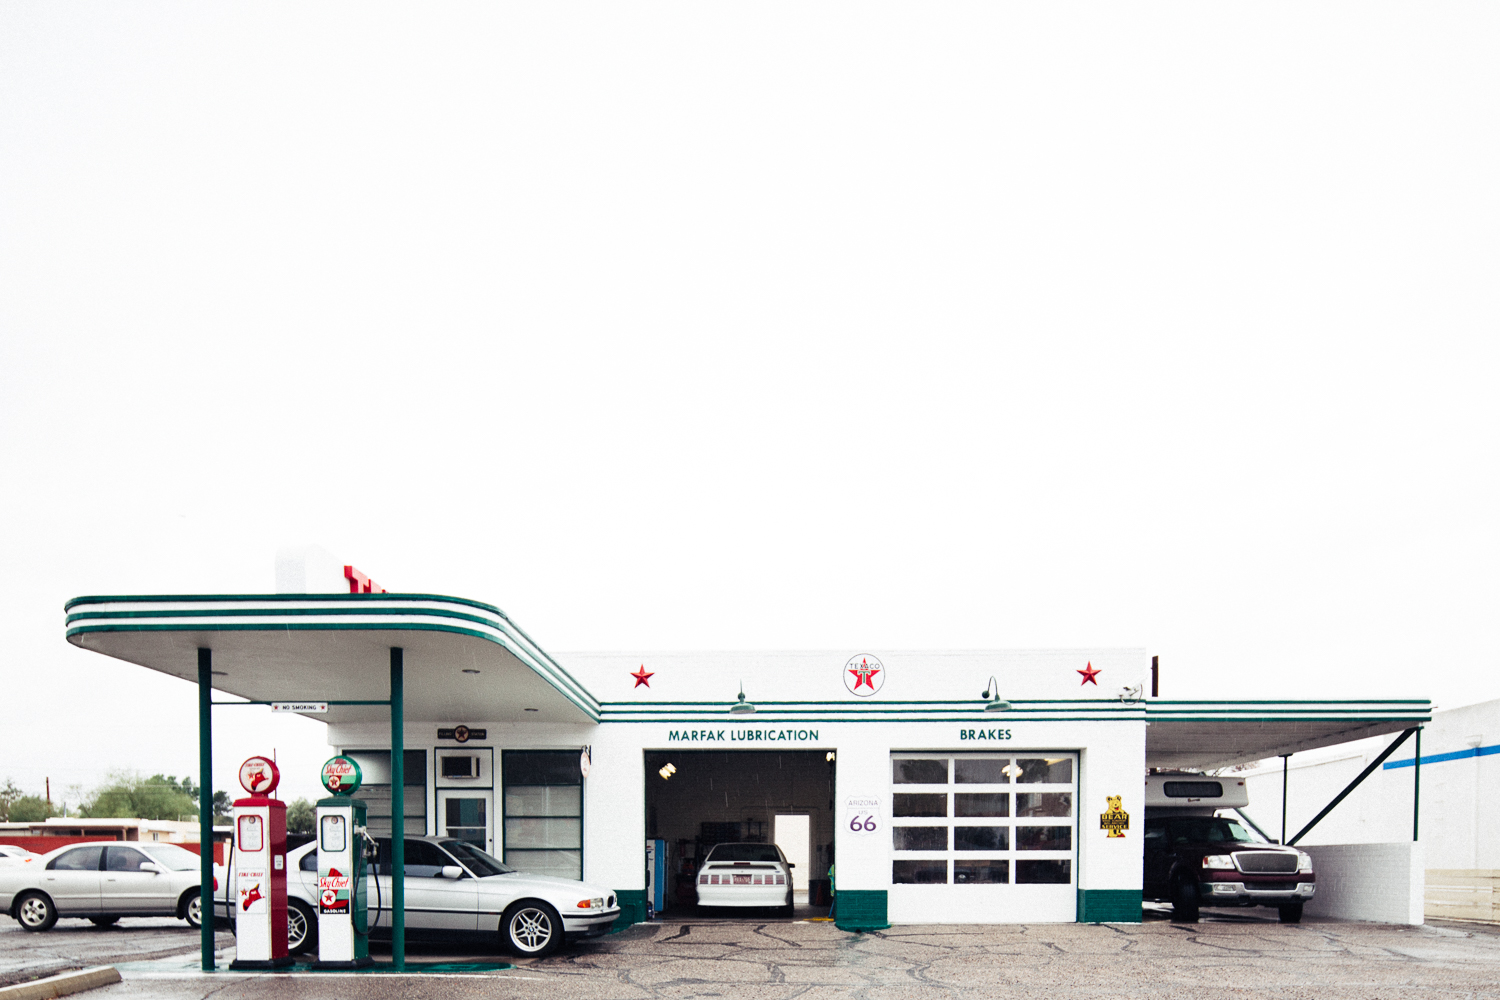 Vintage Texaco gas station in Tucson, Arizona.  Michael Lim Photography 2015 ©